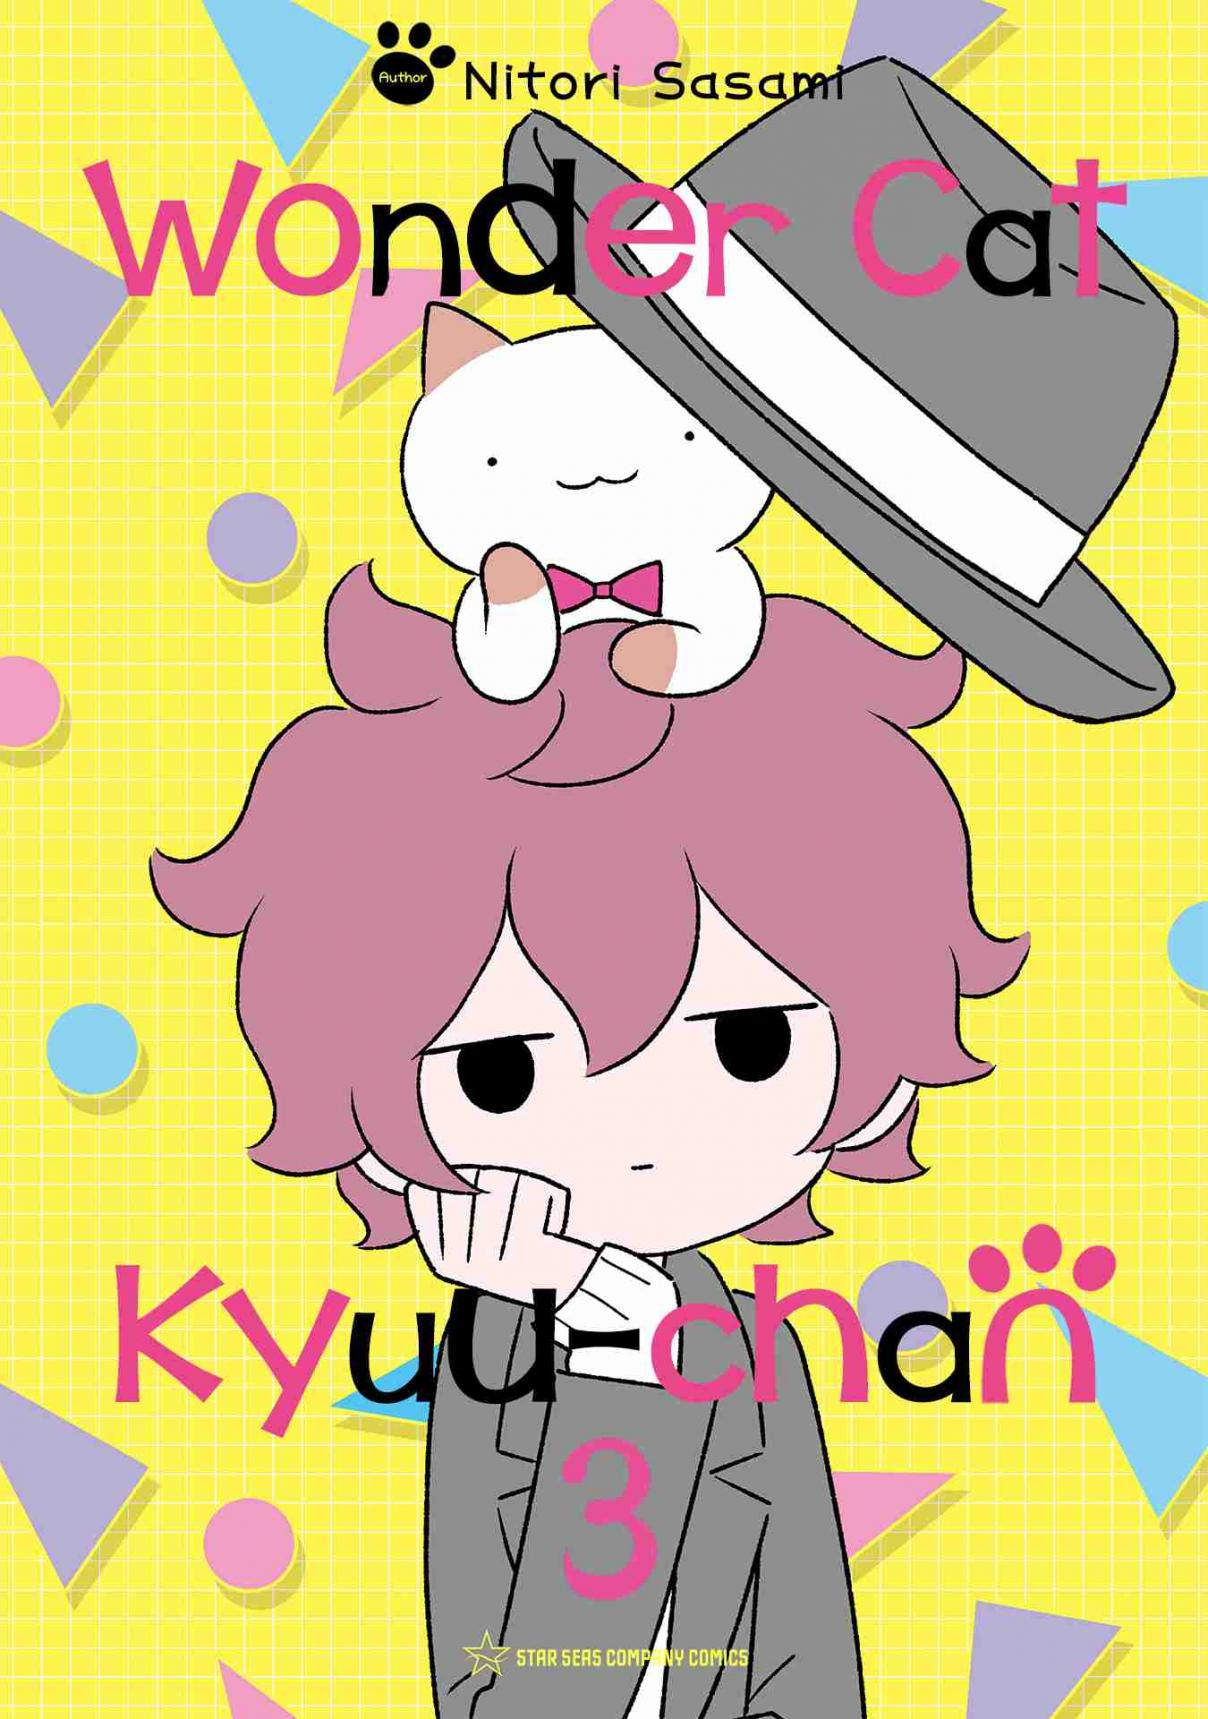 Wonder Cat Kyuu chan Vol. 3 Ch. 320.5 Volume 3